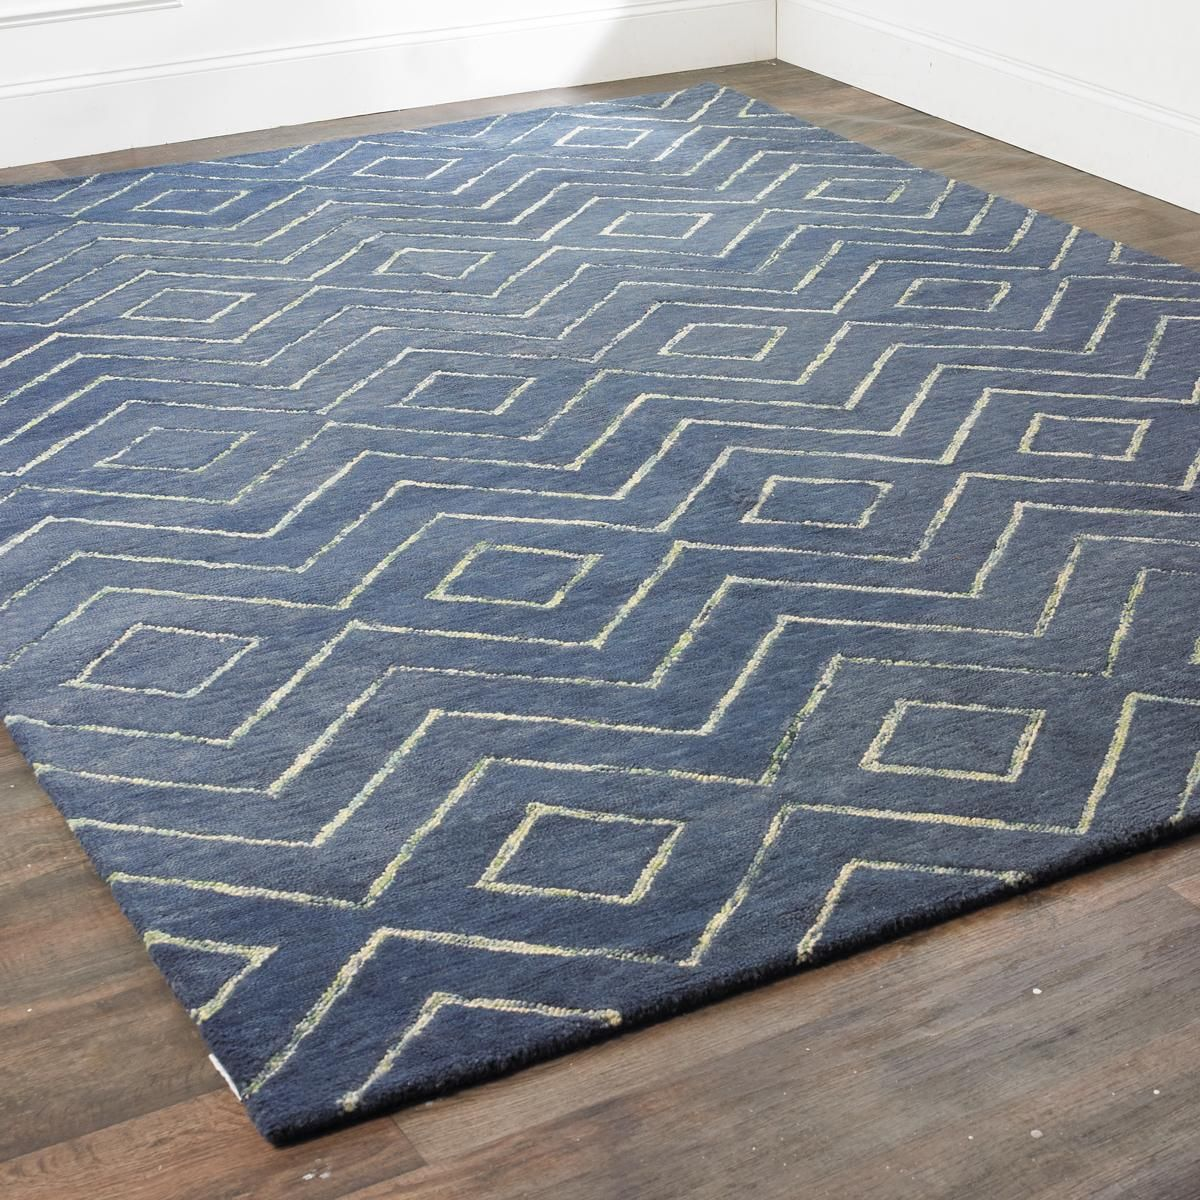 Concentric Zig Zag Wool Rug 369 00 5 X 8 Shades Of Light